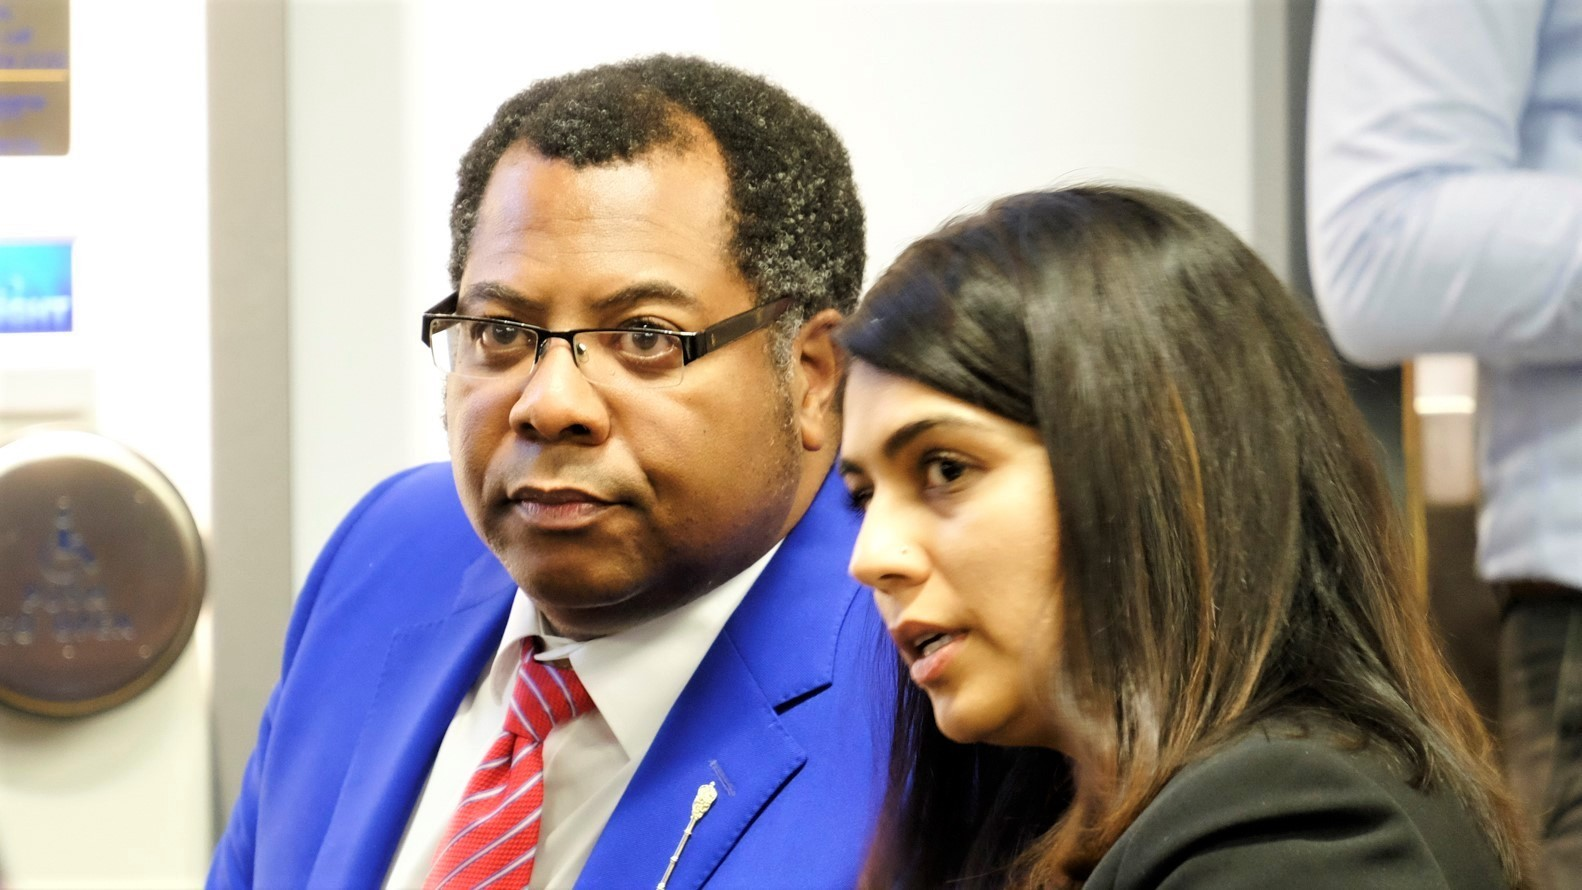 Brampton NDP MPP's vague motion for emergency COVID help in Peel passes at Queen's Park